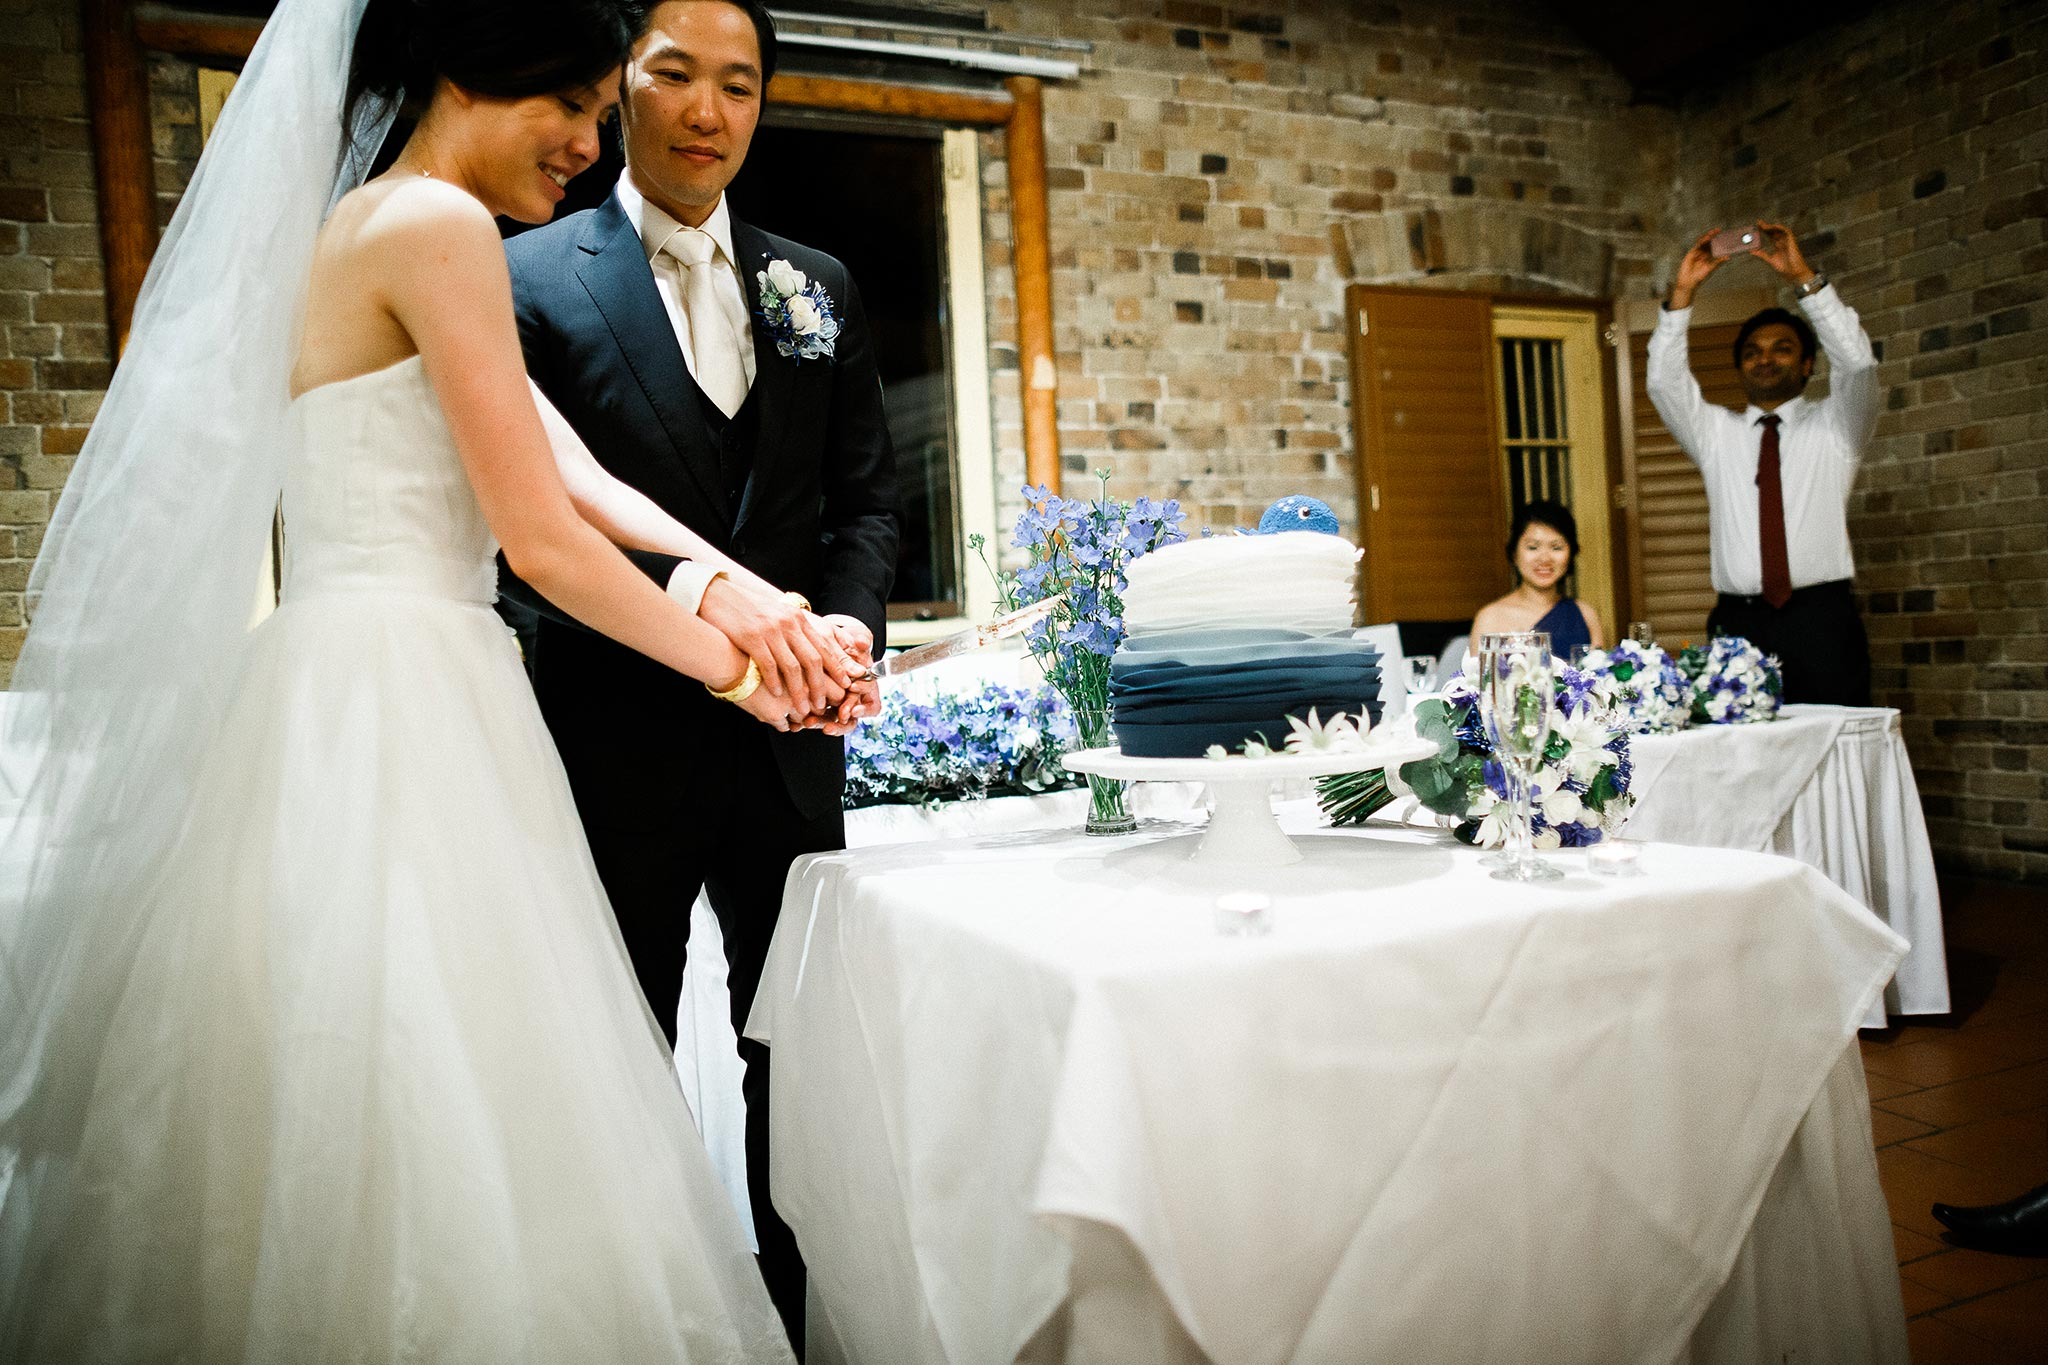 Sydney-The-Rocks-Italian-Village-Wedding-Reception-Cake-Cutting